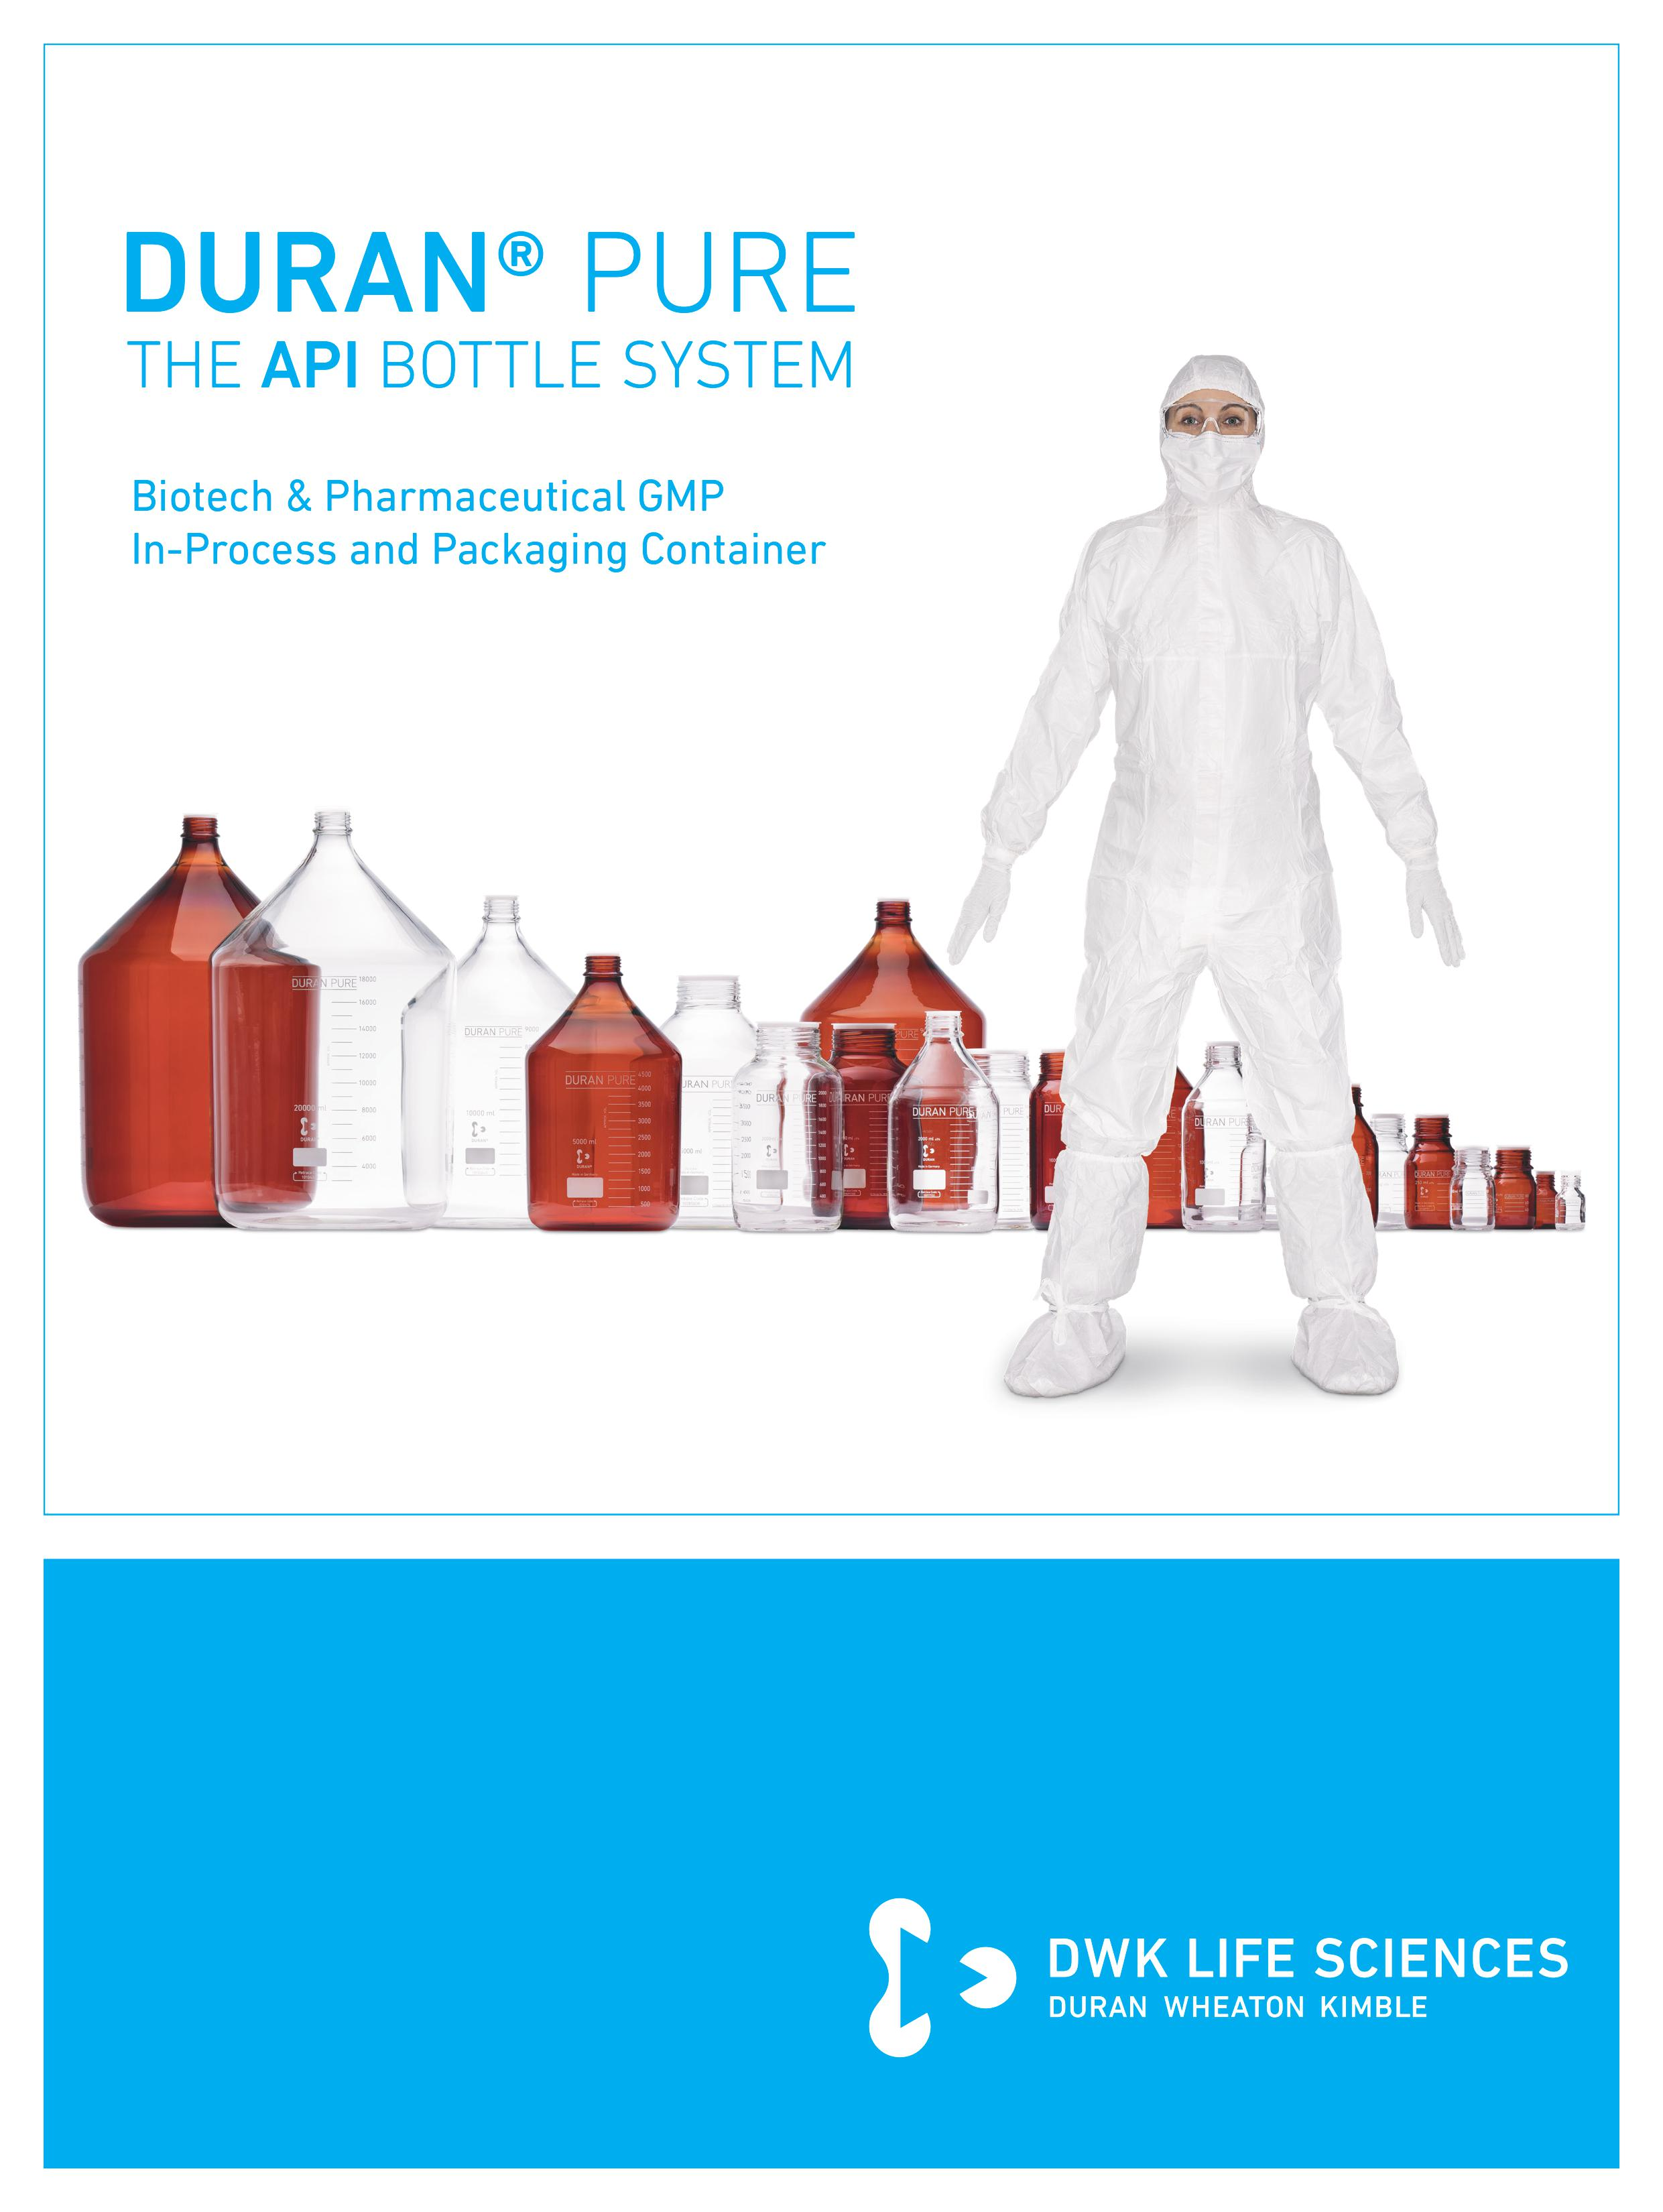 DURAN® PURE - The API Bottle System